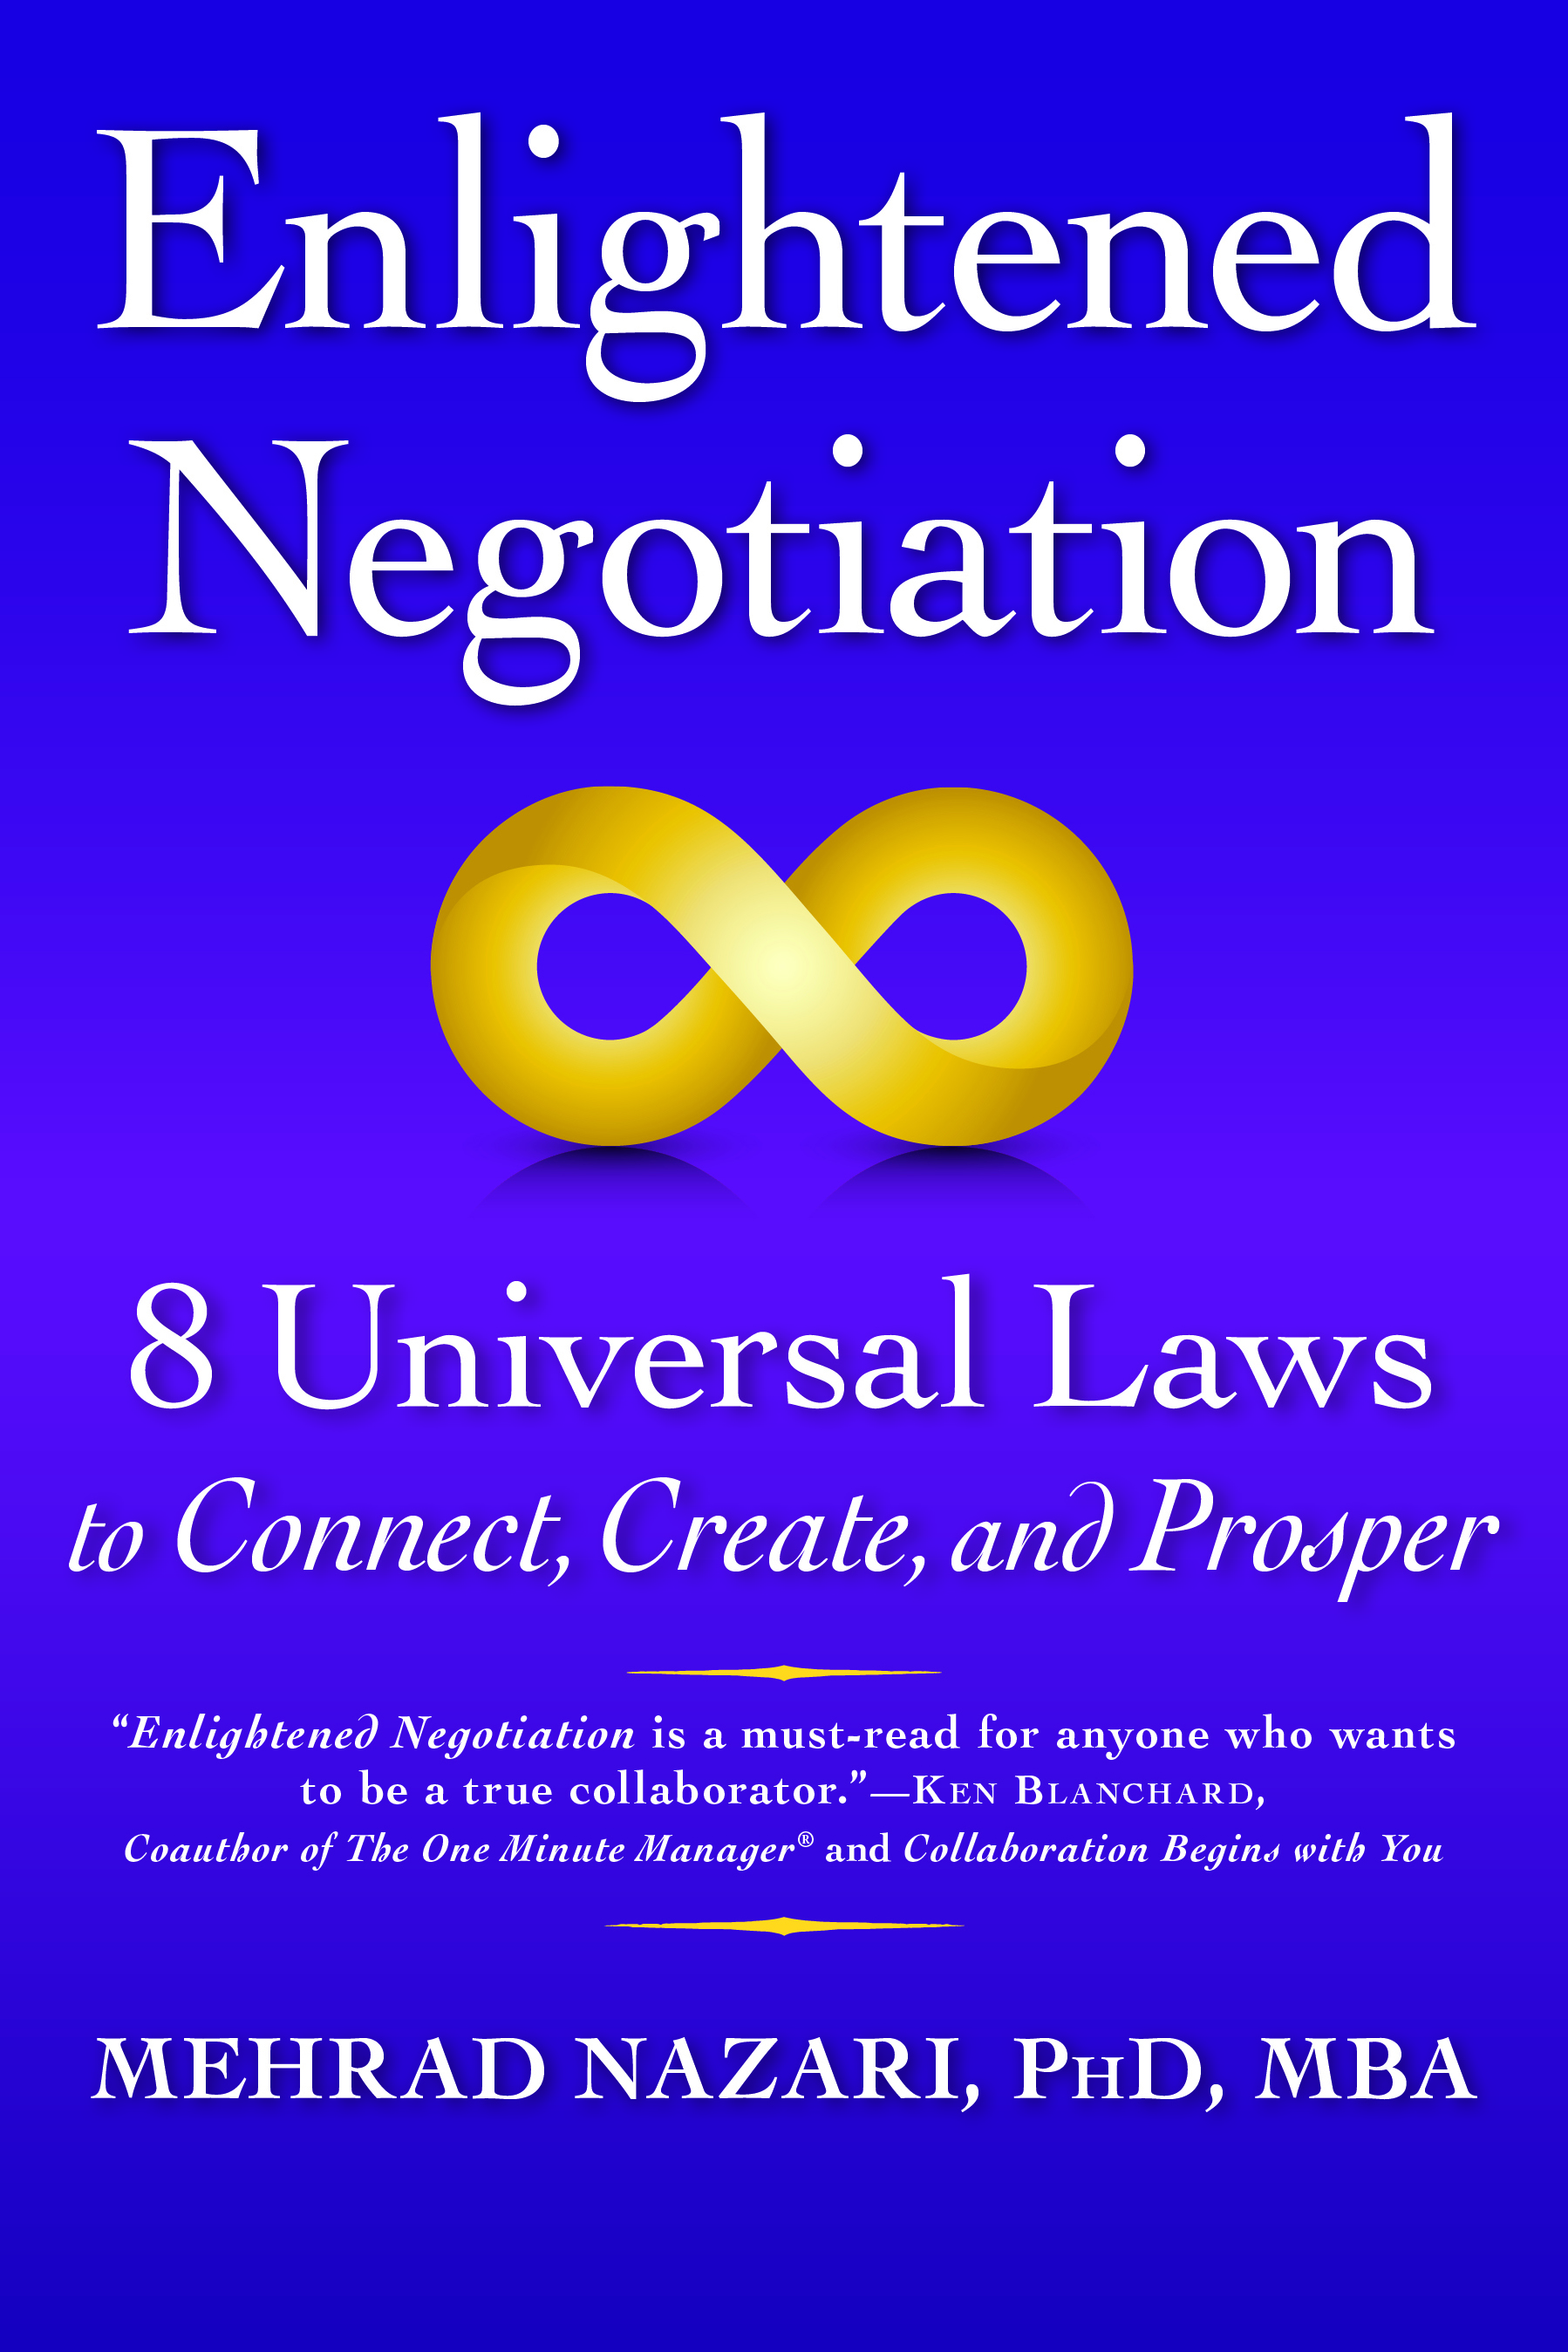 Enlightened Negotiation